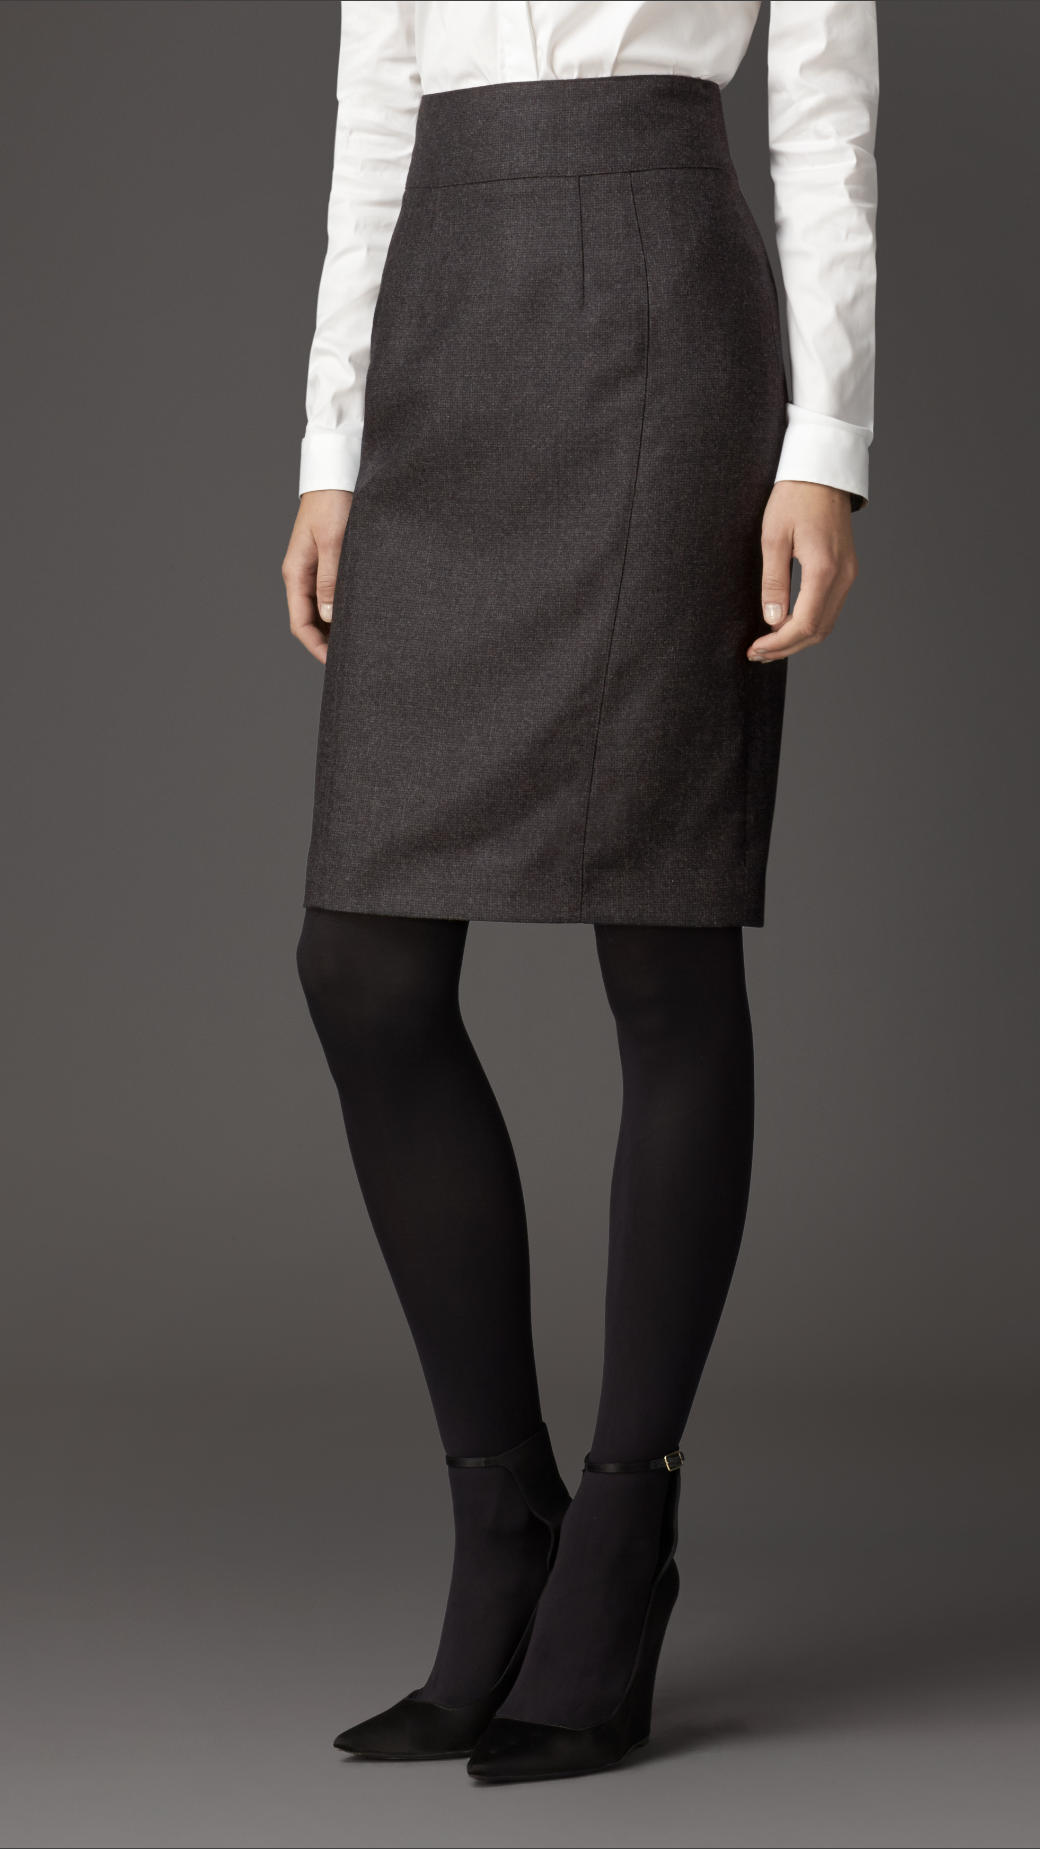 Burberry Micro-check Wool Flannel Pencil Skirt in Gray | Lyst